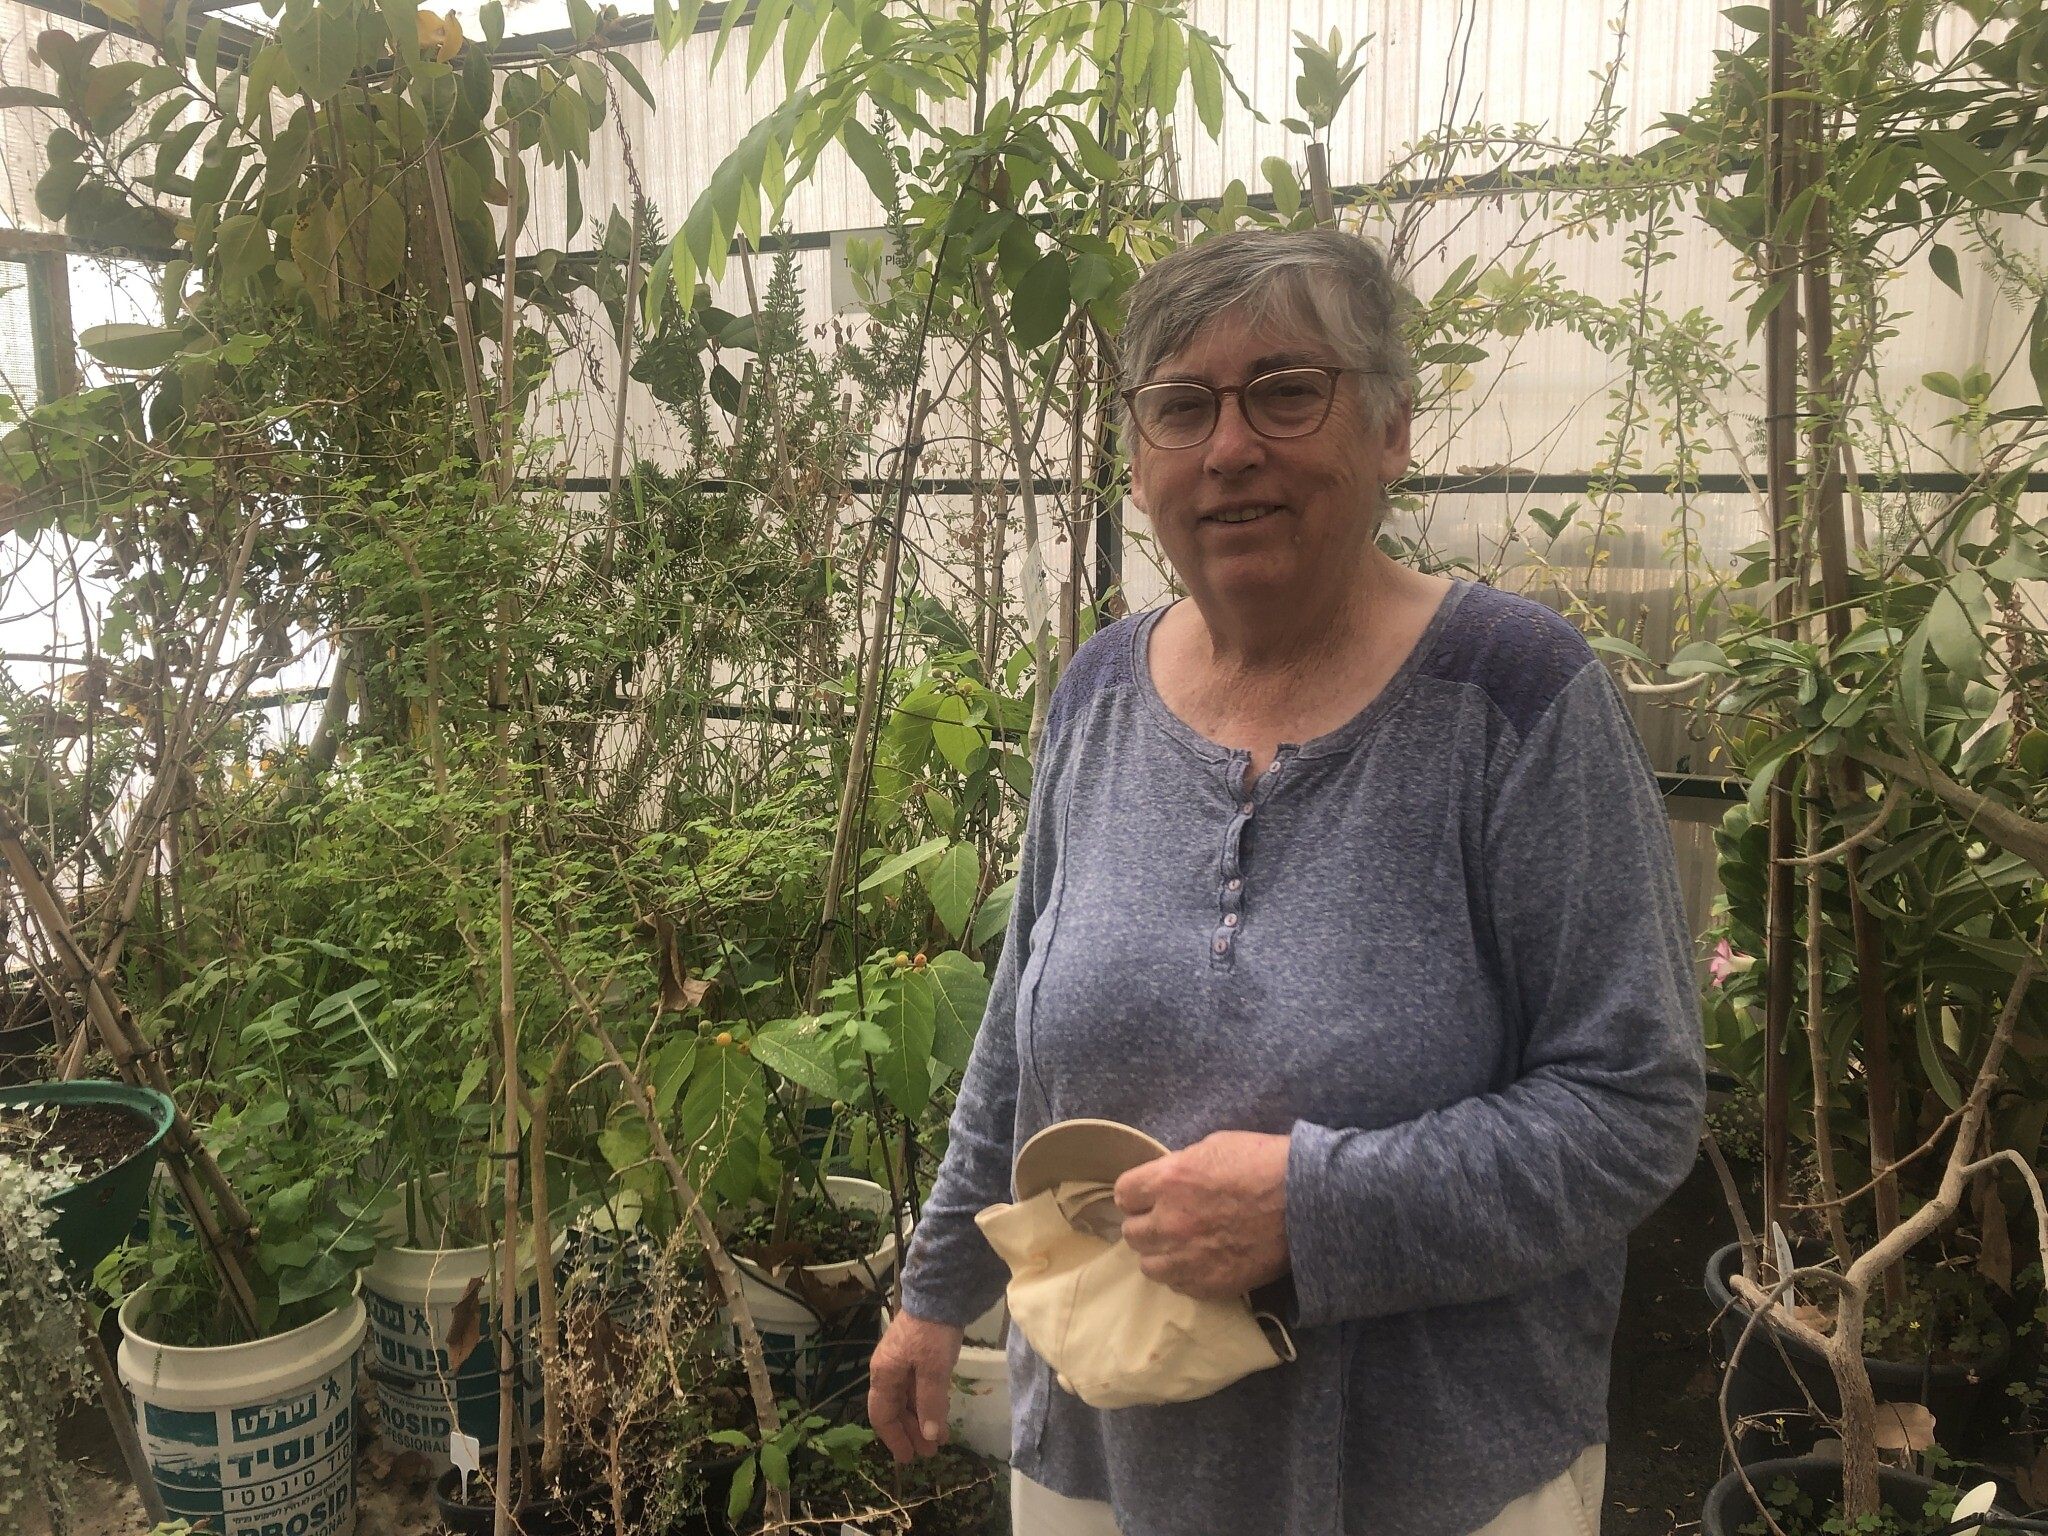 Dr Elaine Solowey in her greenhouse at Kibbutz Ketura in southern Israel, March 21, 2021. (Sue Surkes/Times of Israel)